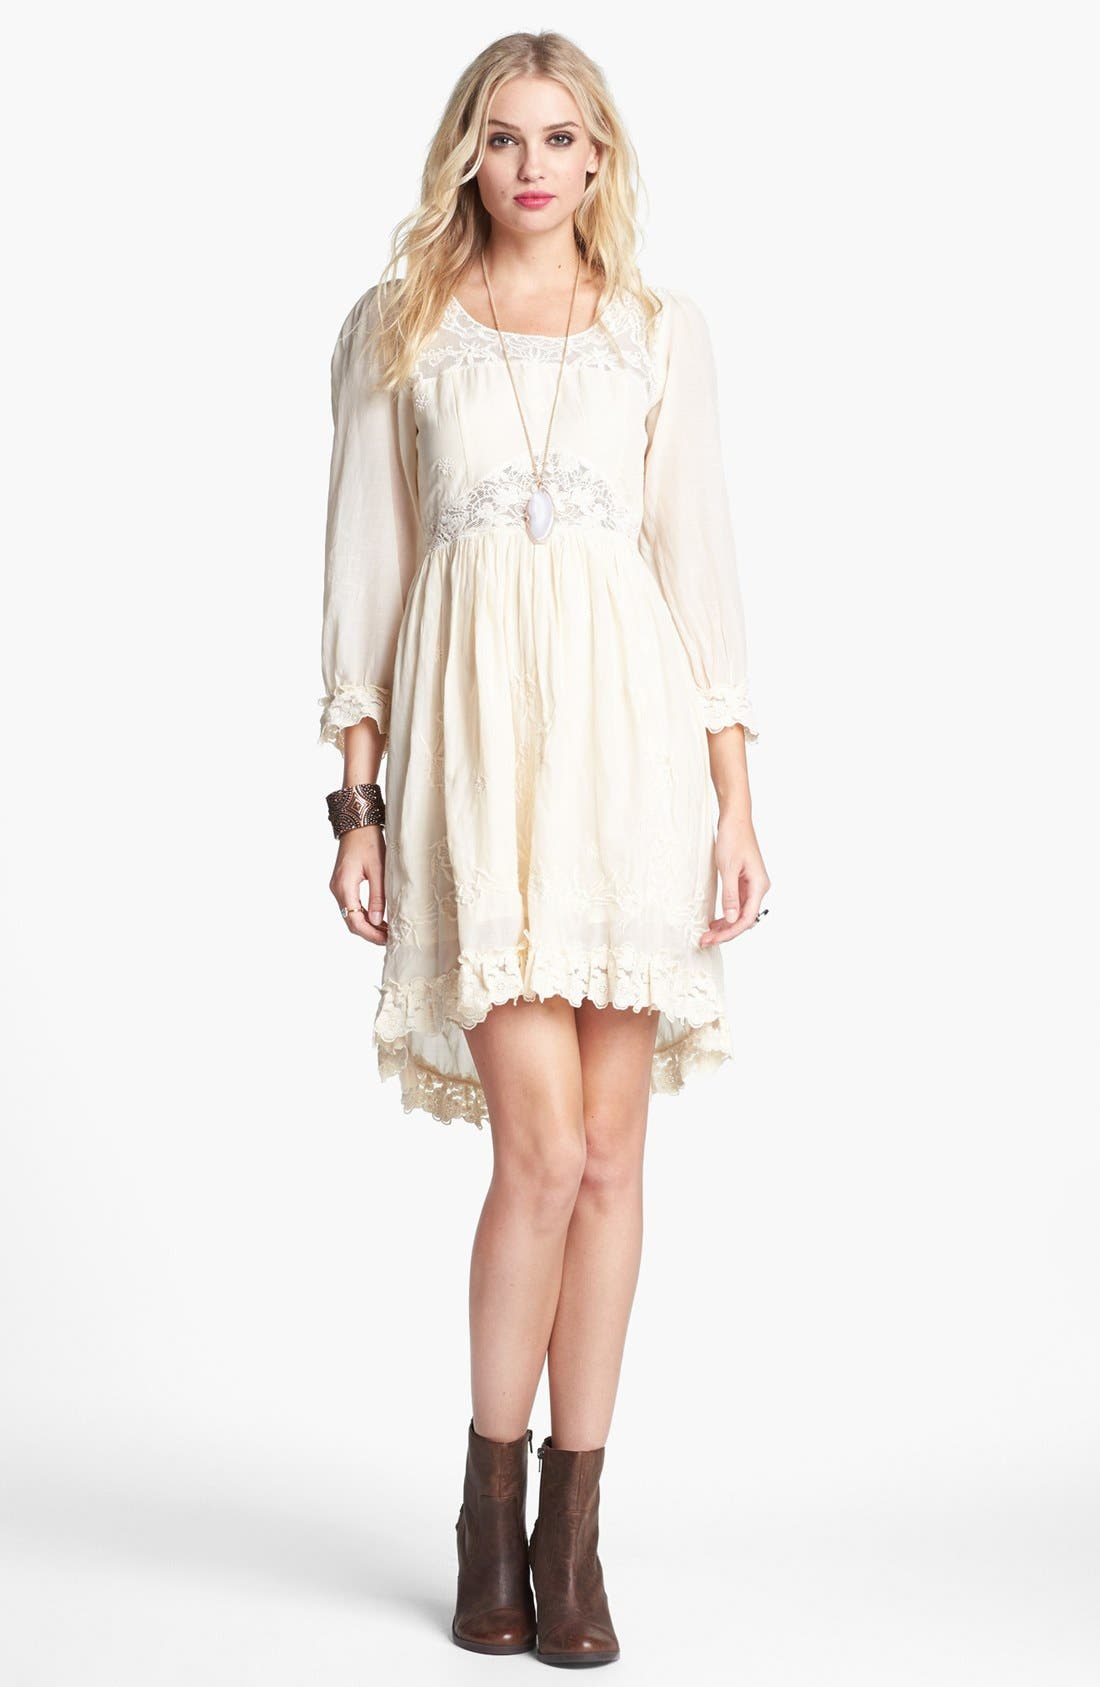 Alternate Image 1 Selected - Free People 'Montana' Embroidery & Lace Cotton High/Low Dress